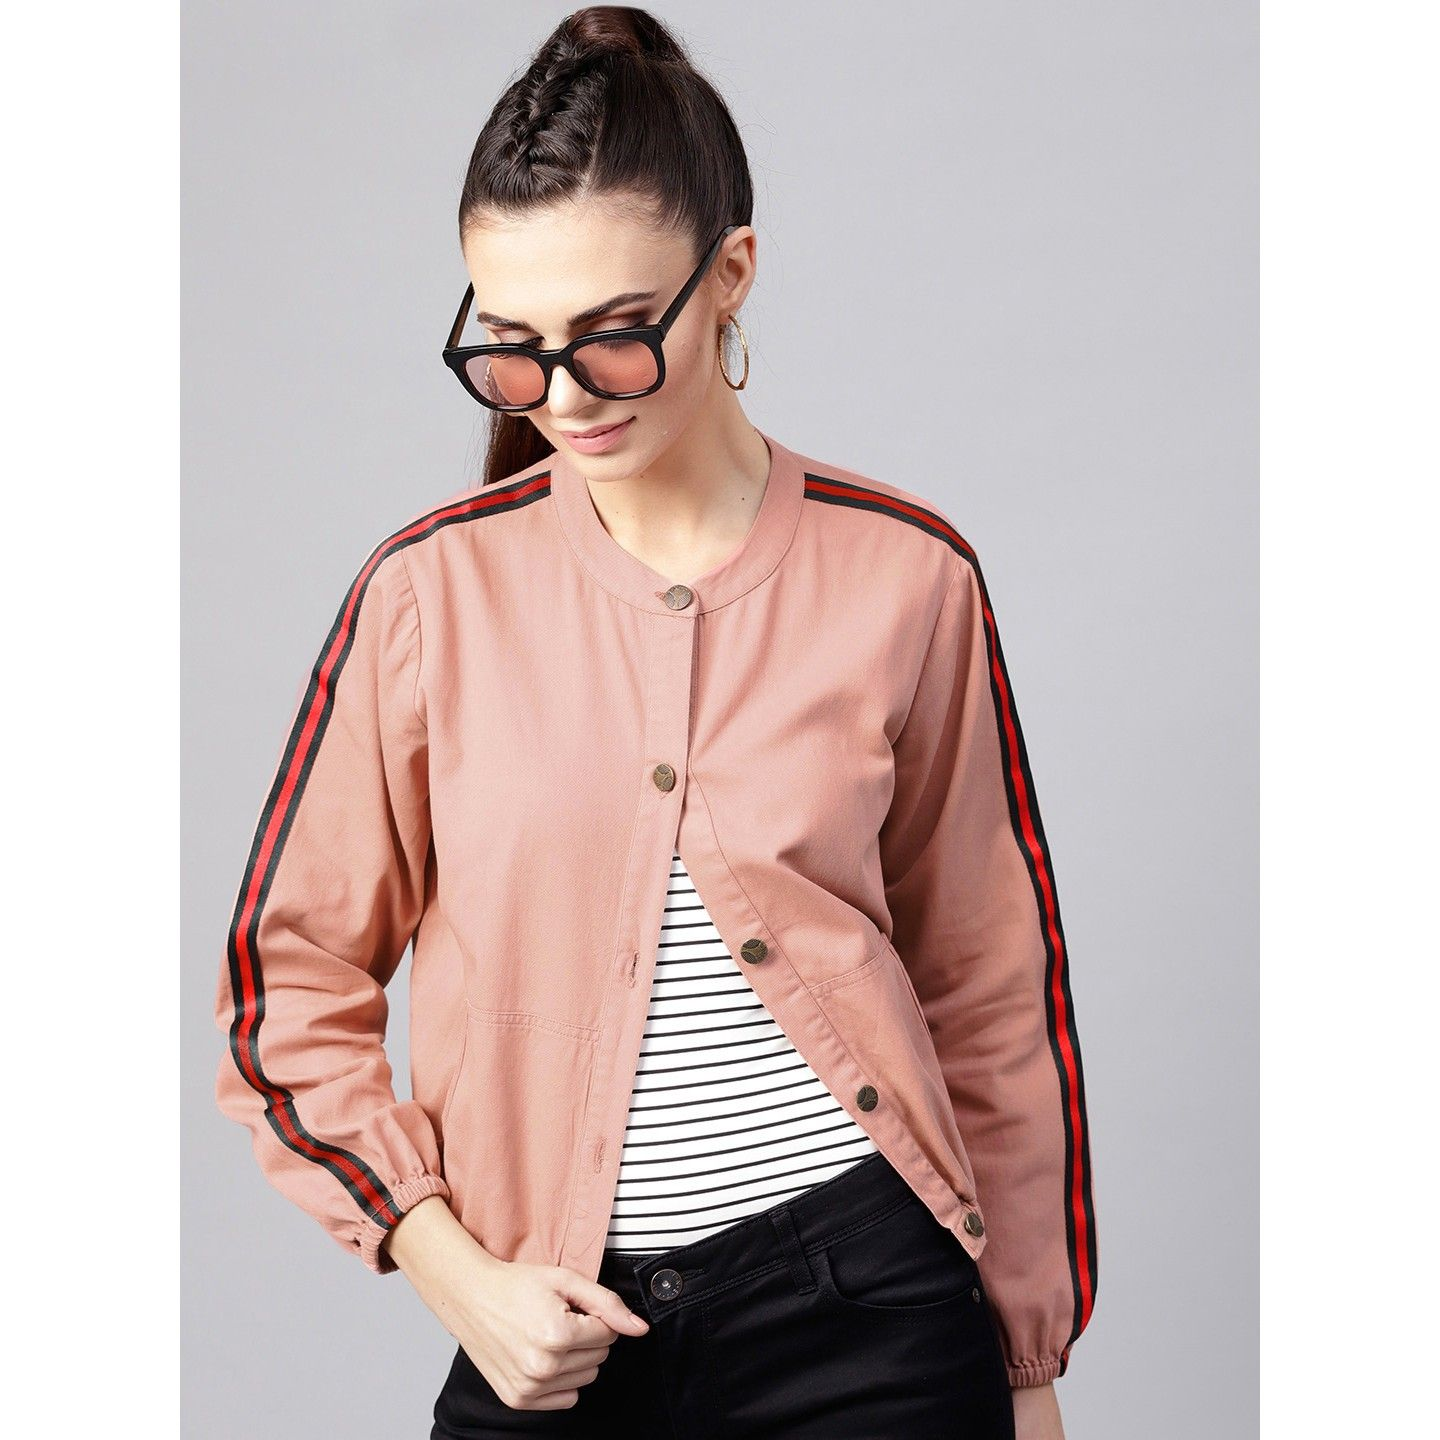 Sassafras Women Dusty Pink Bomber Jacket Lowest Price In India 2020 Full Specification Features Jackets For Women Bomber Jacket Jackets